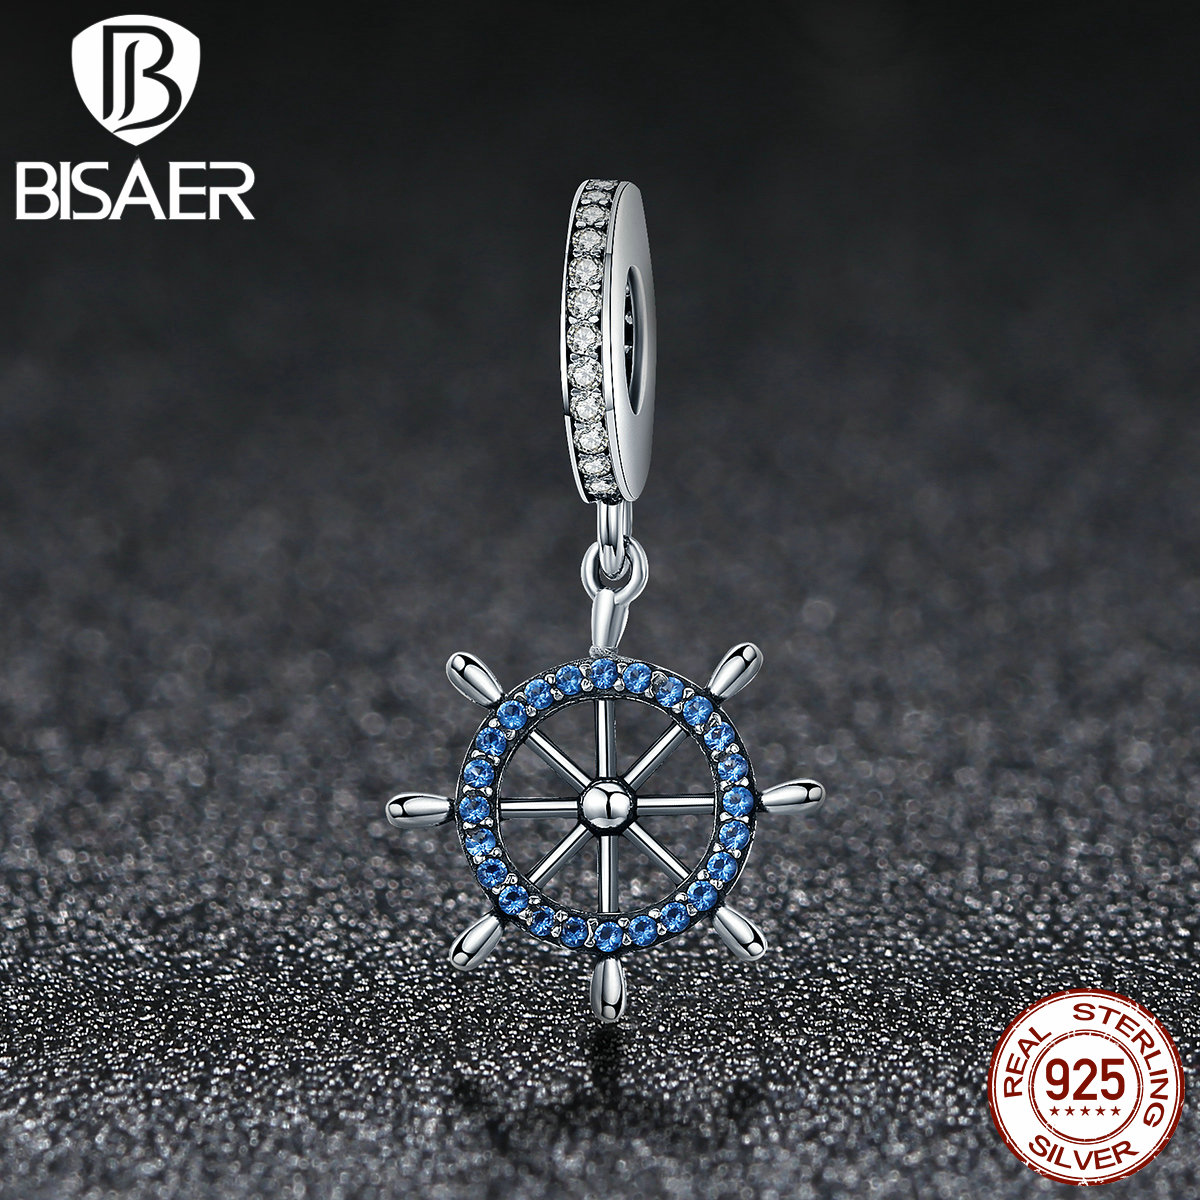 925 Sterling Silver Travelling Pendant, Sky Wheel Beads & Charms Fit Pan Bracelet Authentic Original Jewelry Gift ECC413